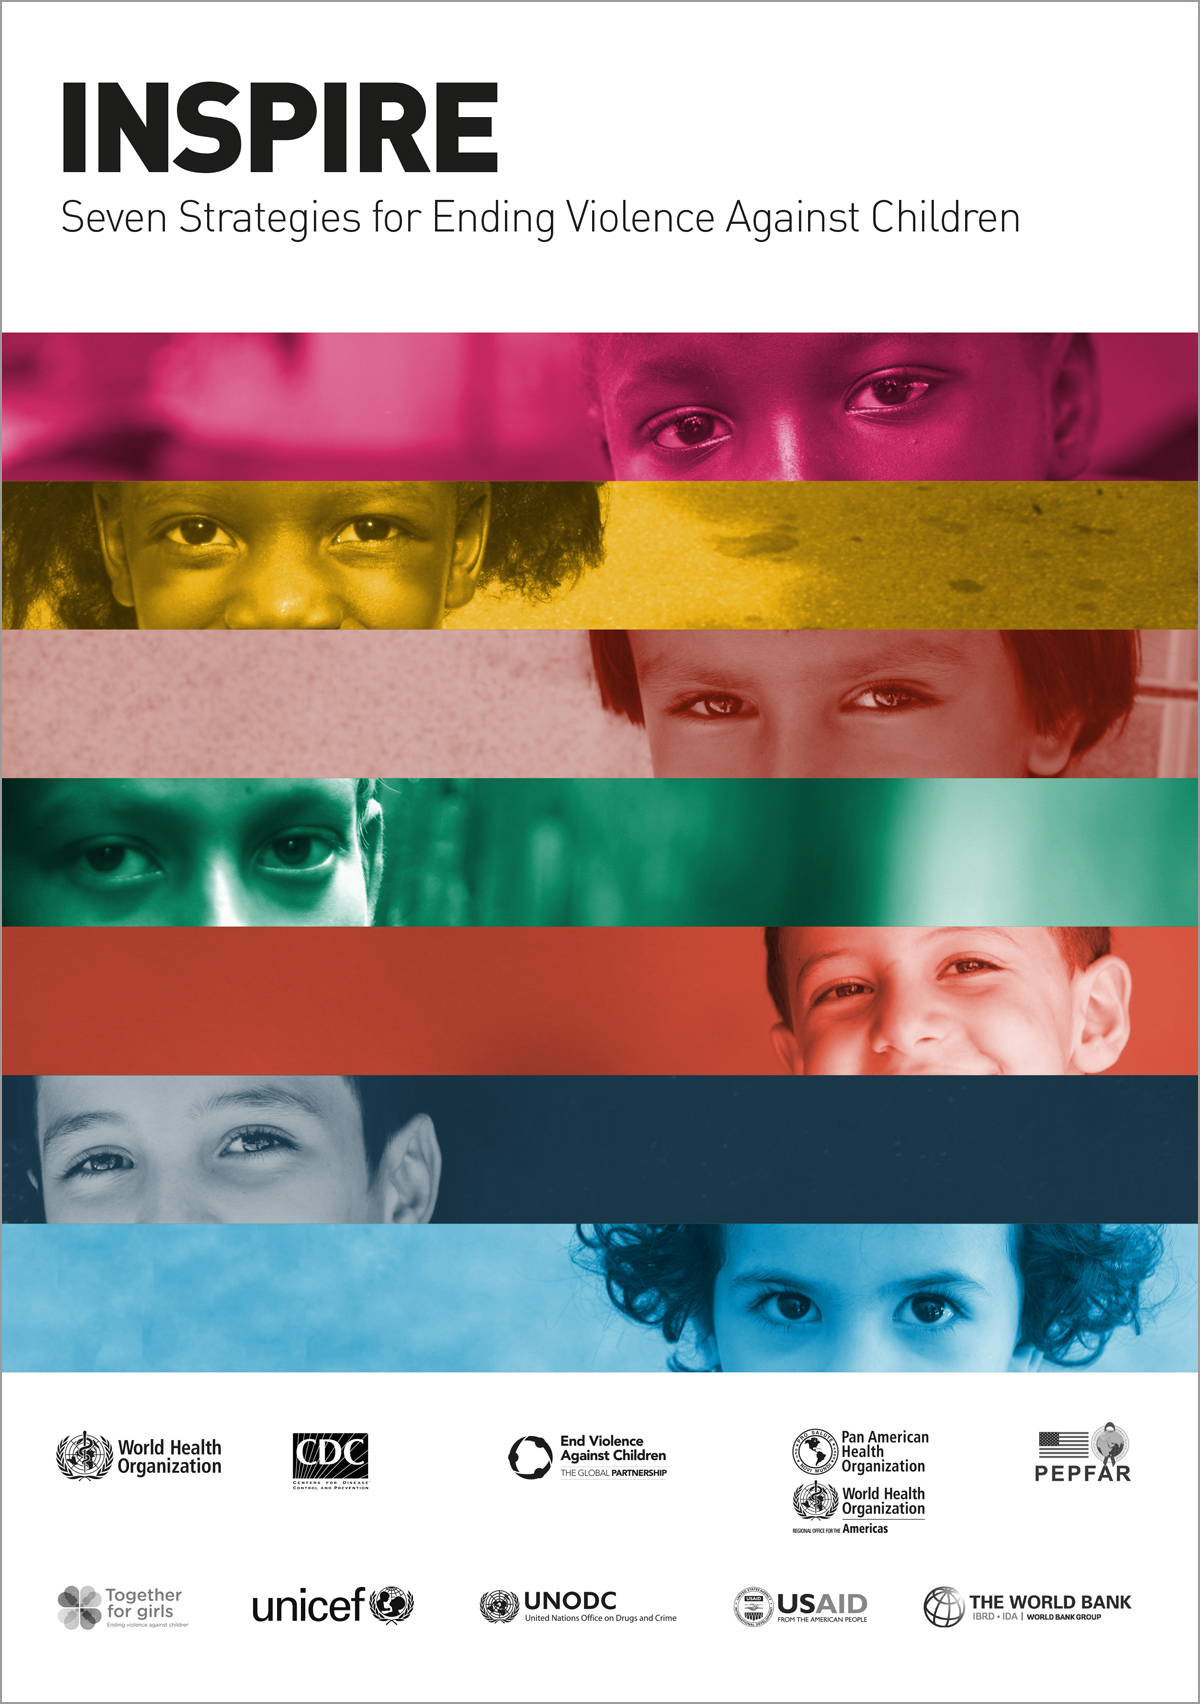 """CLIENT:  World Health Organization  PROJECT: """"INSPIRE, Seven Strategies for Ending Violence Against Children"""""""" –  report"""